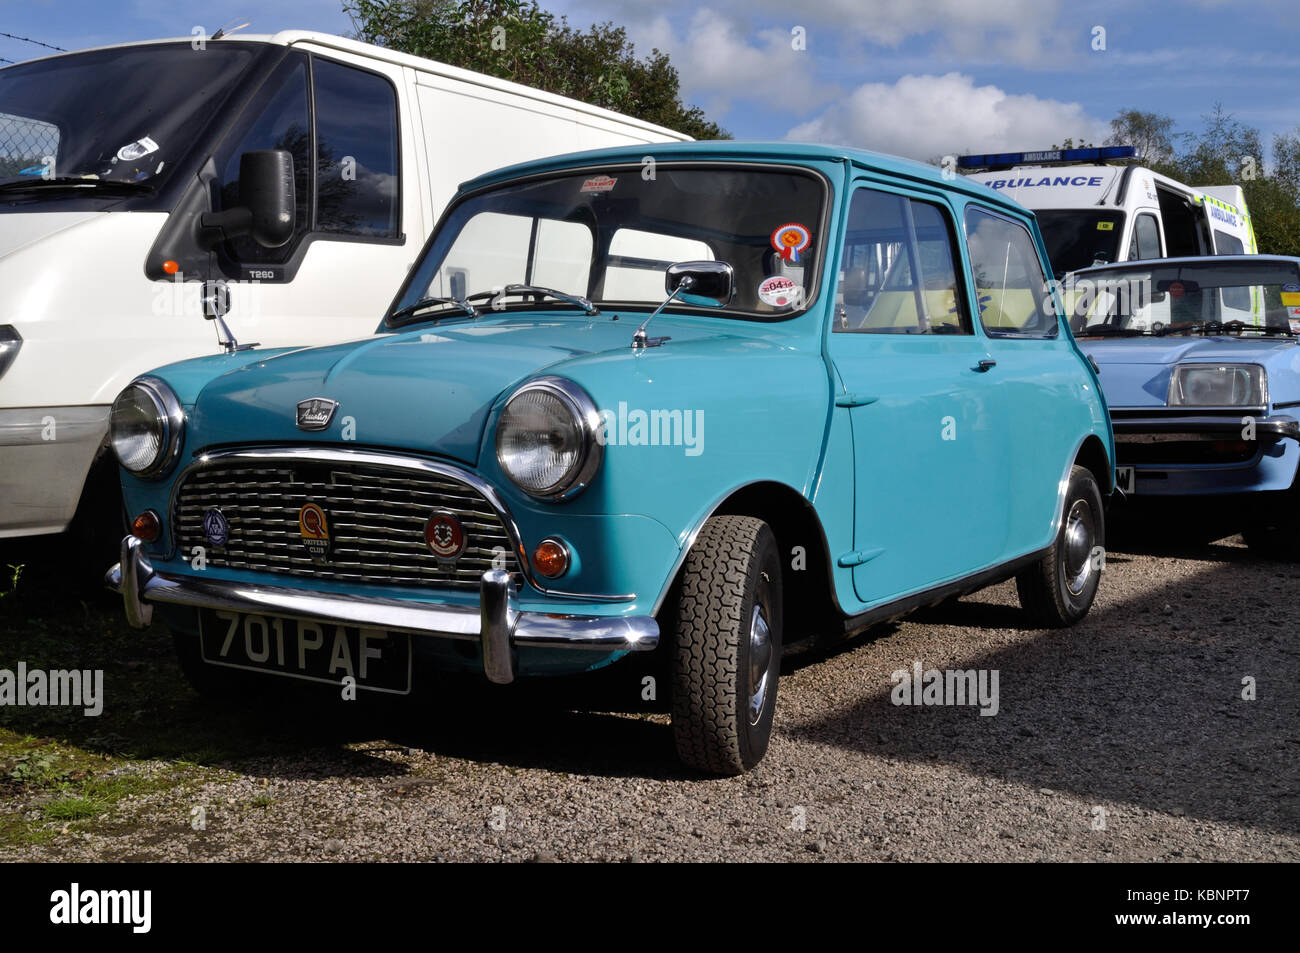 A blue Austin Mini is seen at the Winkleigh site of the West of England Transport Collection Open Day on 6th October - Stock Image